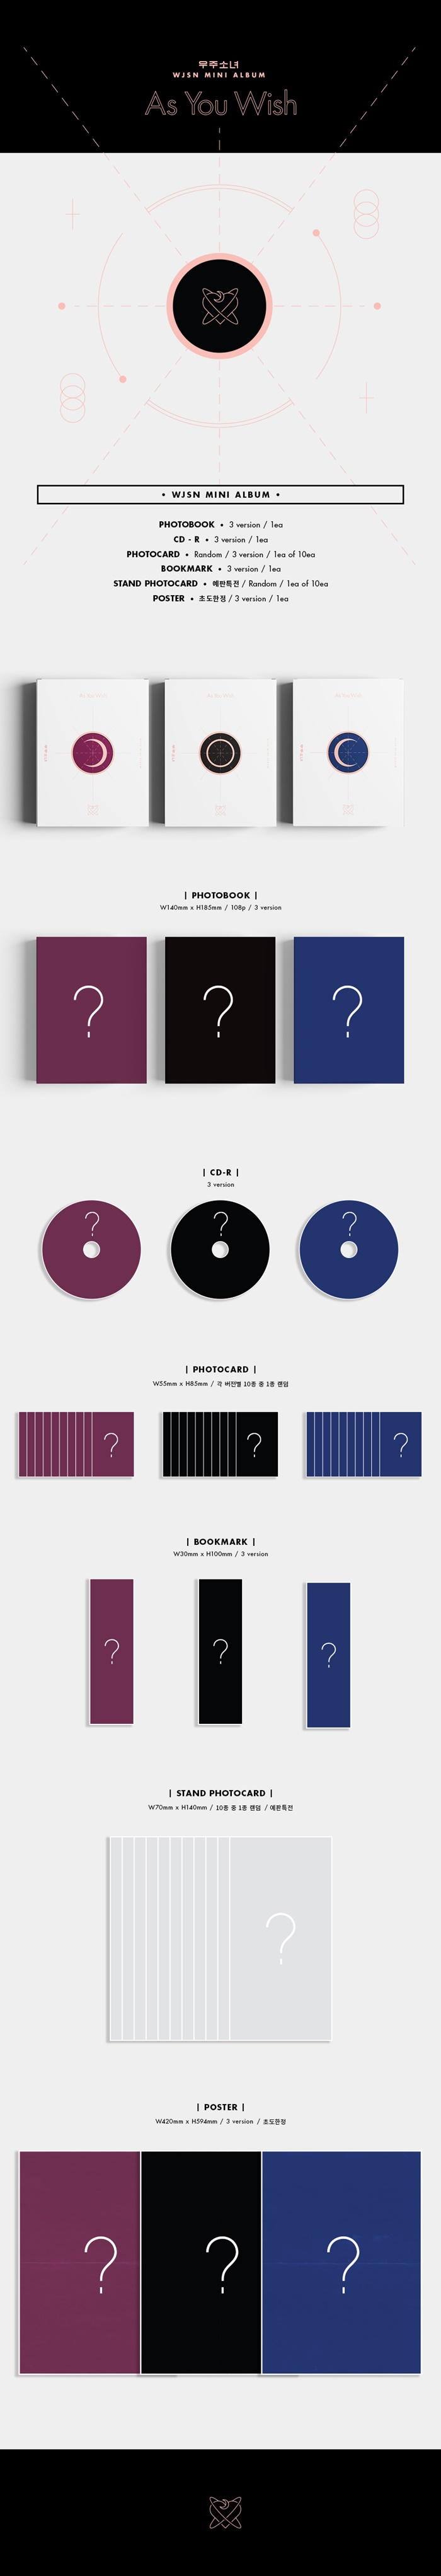 Image result for wjsn as you wish album